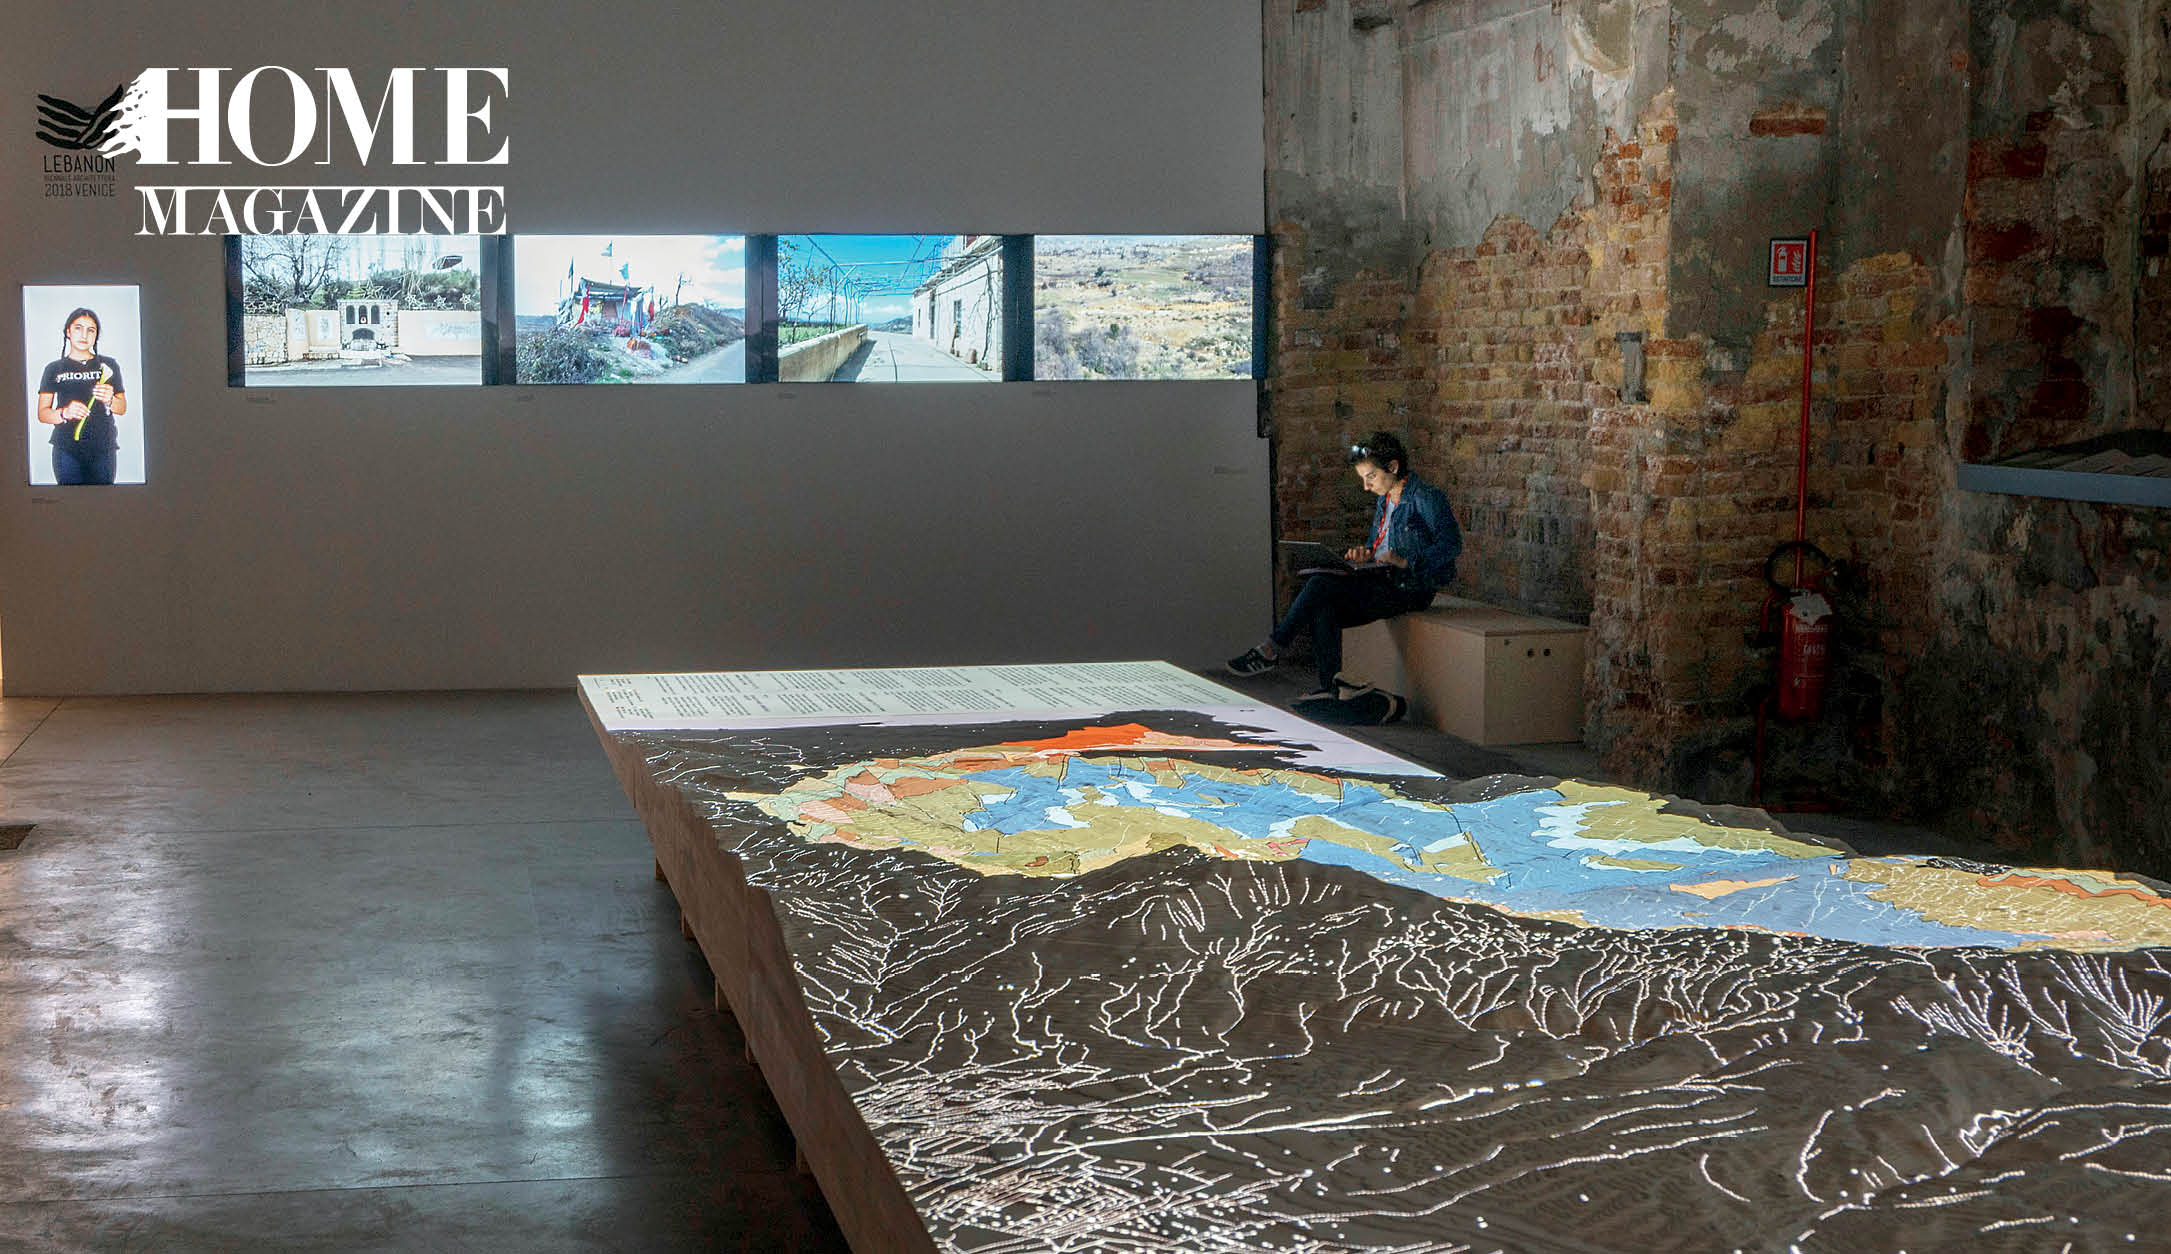 Lebanon's Premier at La Biennale Di Venezia Architettura : Into the International Discussion on Architecture